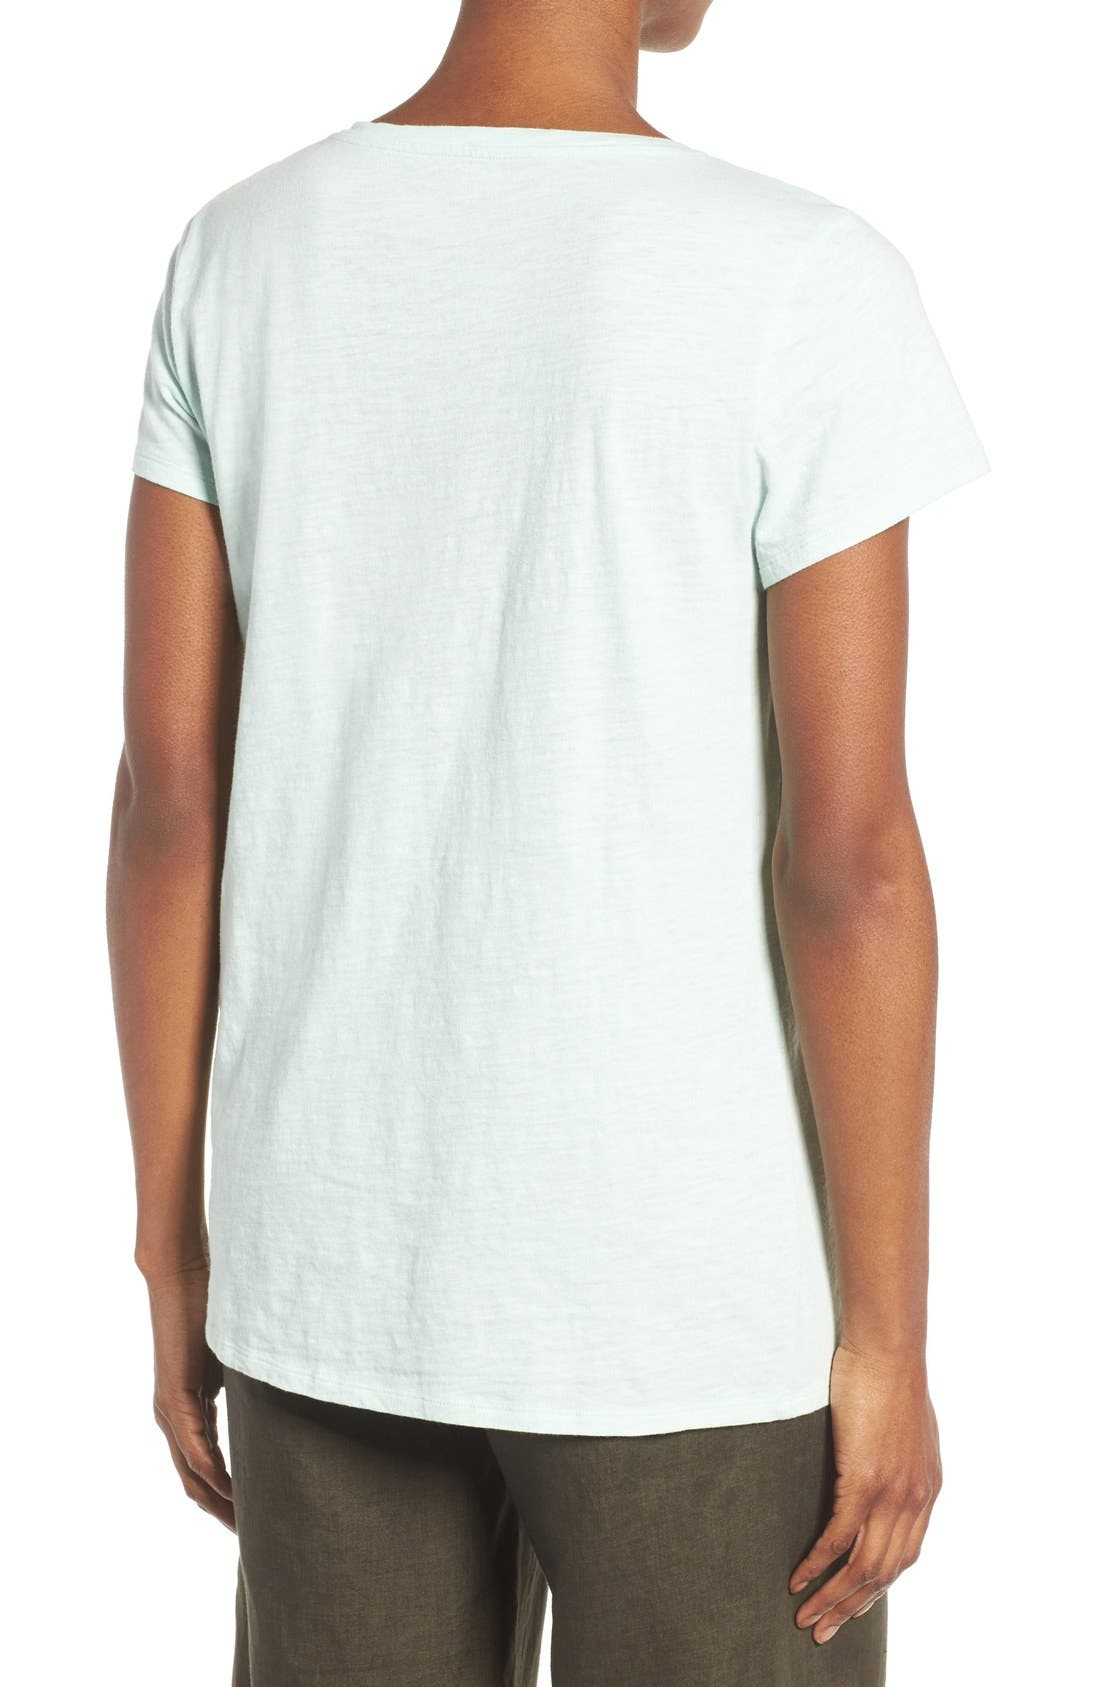 Alternate Image 2  - Eileen Fisher Organic Cotton V-Neck Tee (Regular & Petite) (Nordstrom Exclusive)